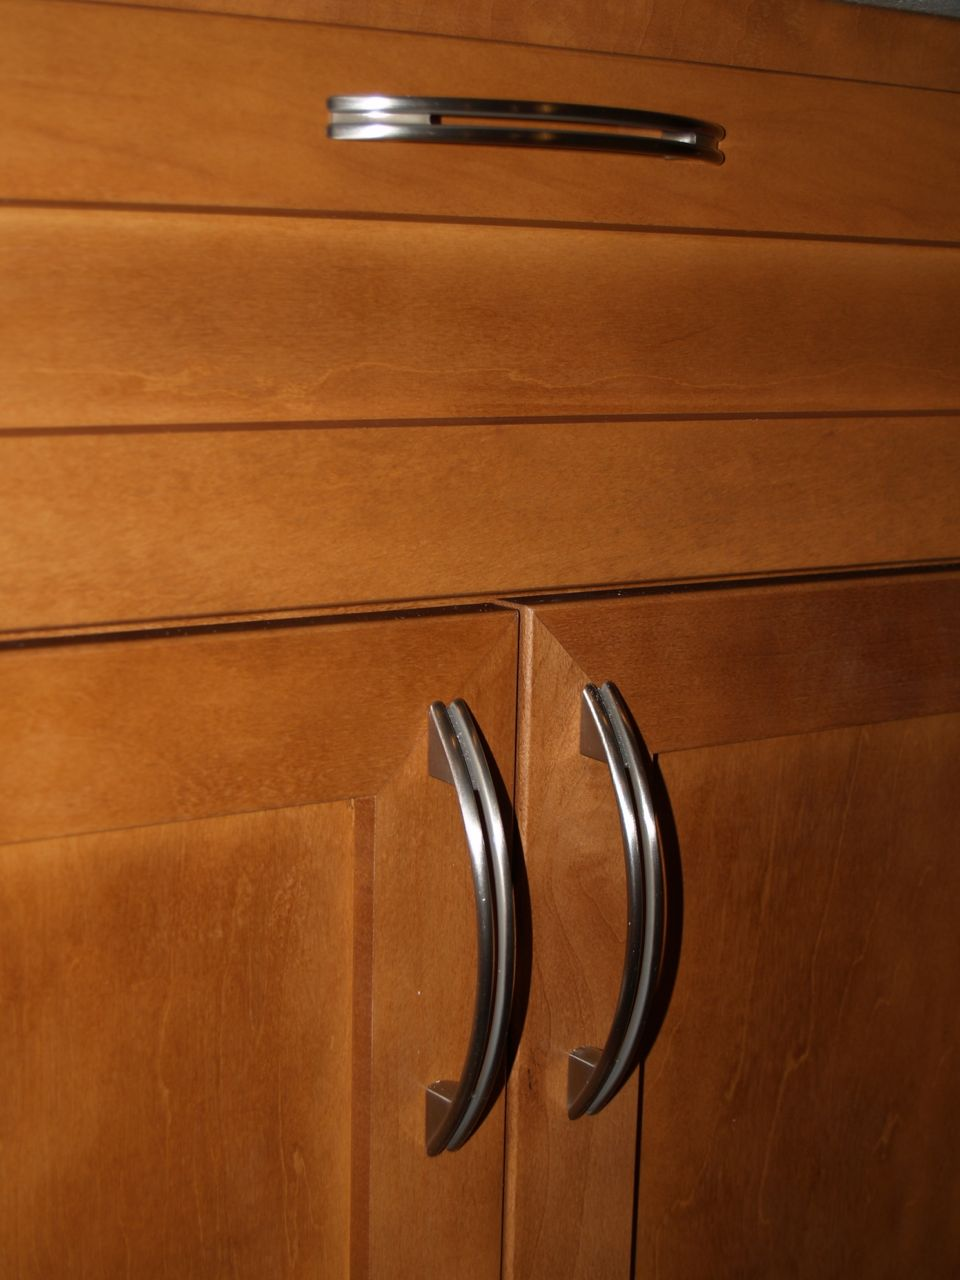 Kitchen cabinets with handles - Kitchen cabinets with handles ...